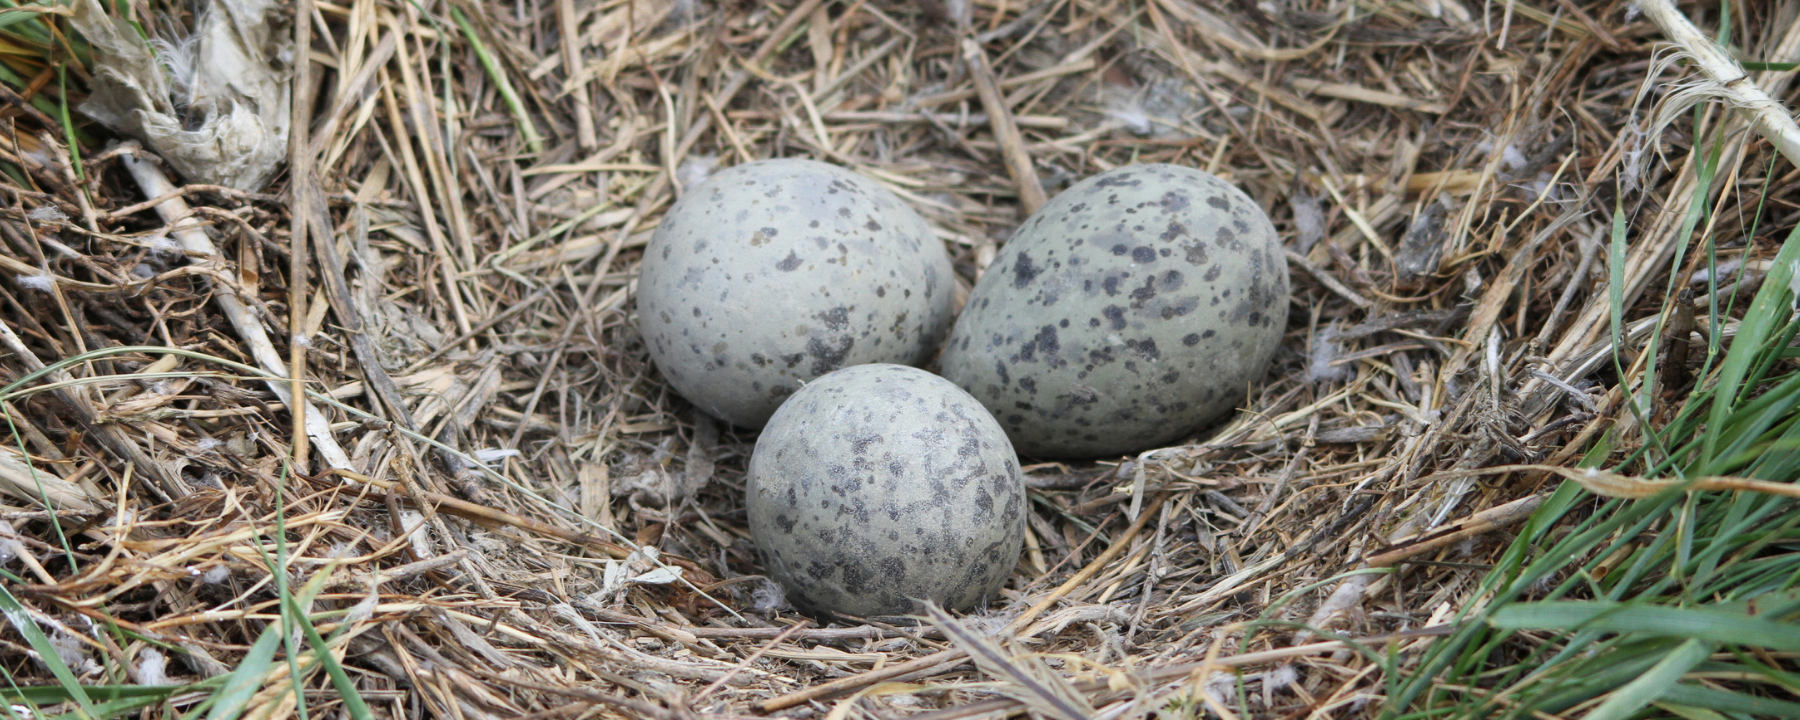 Unhatched Gulls Shake Their Shells to Warn Siblings of Danger